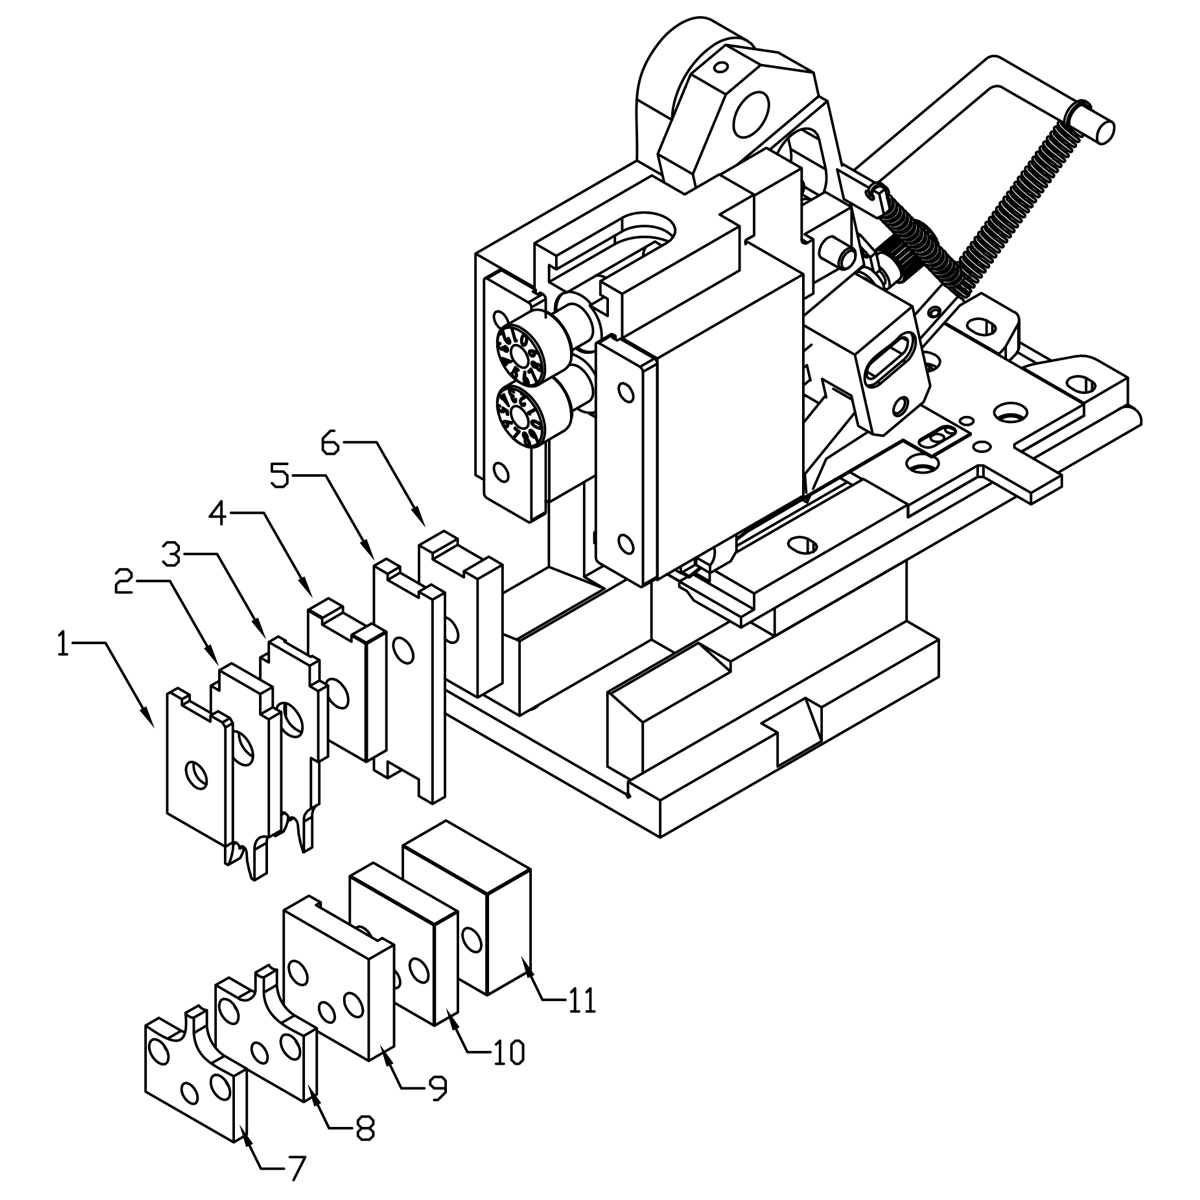 Crimping Tool Diagram also 2152 CT Coax Cable Crimp Tool RG174 and 8281 together with Snap On Wire Harness additionally Paladin Tools Crimpall Series 4475 also Ratchet Crimper for Circular Contacts. on open barrel crimp tool